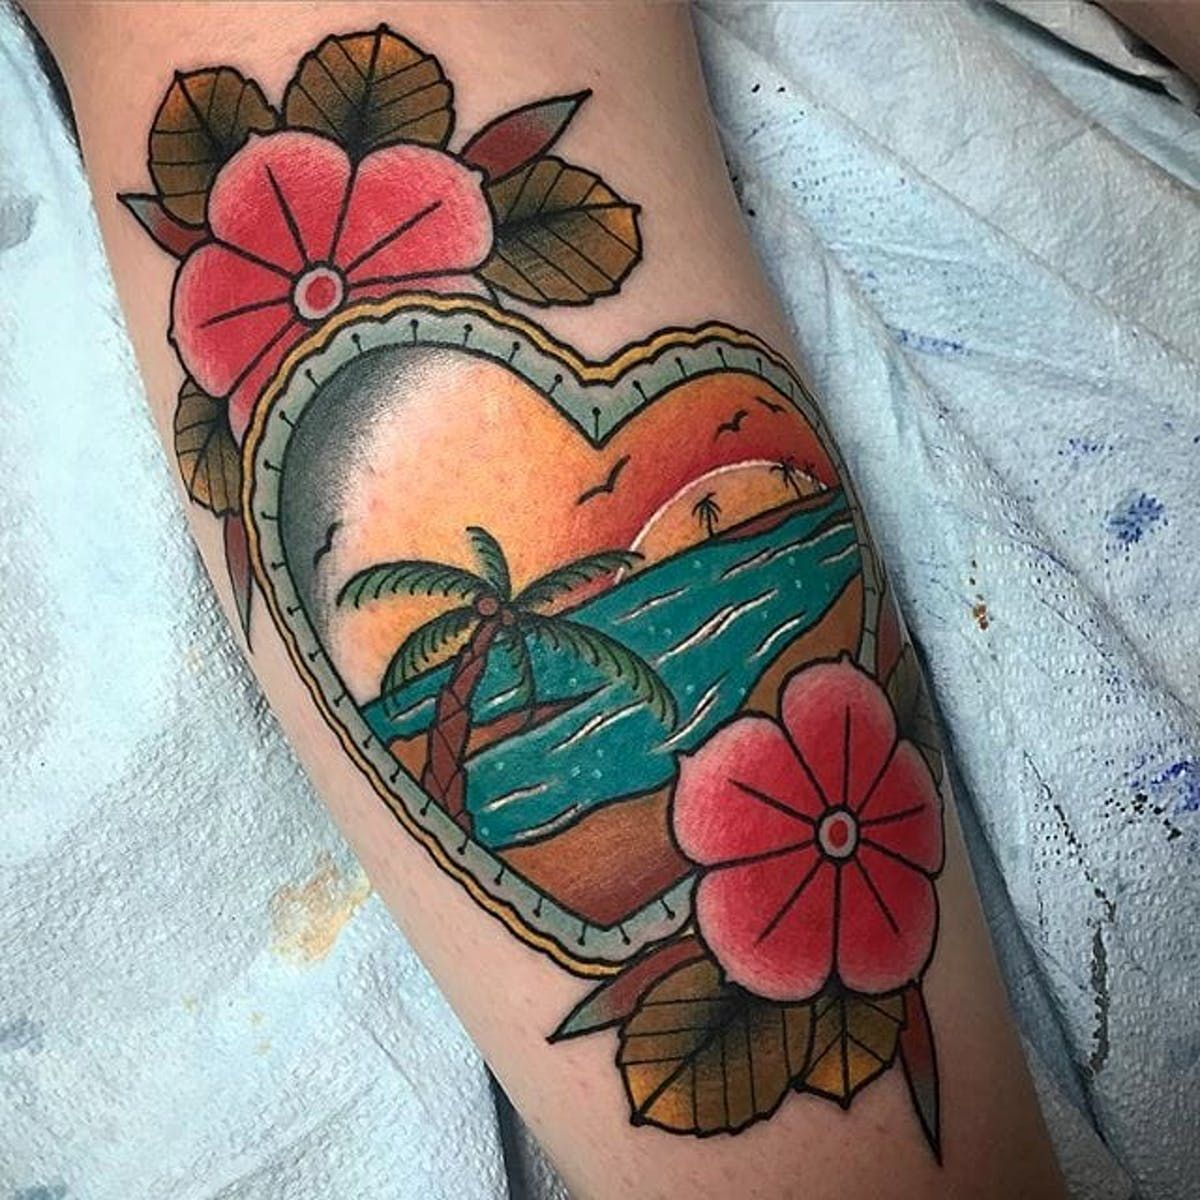 cc0ddc0516aeb Beach tattoo by Cory Connel. #beach #summer #paradise #ocean #vacation  #getaway #heart